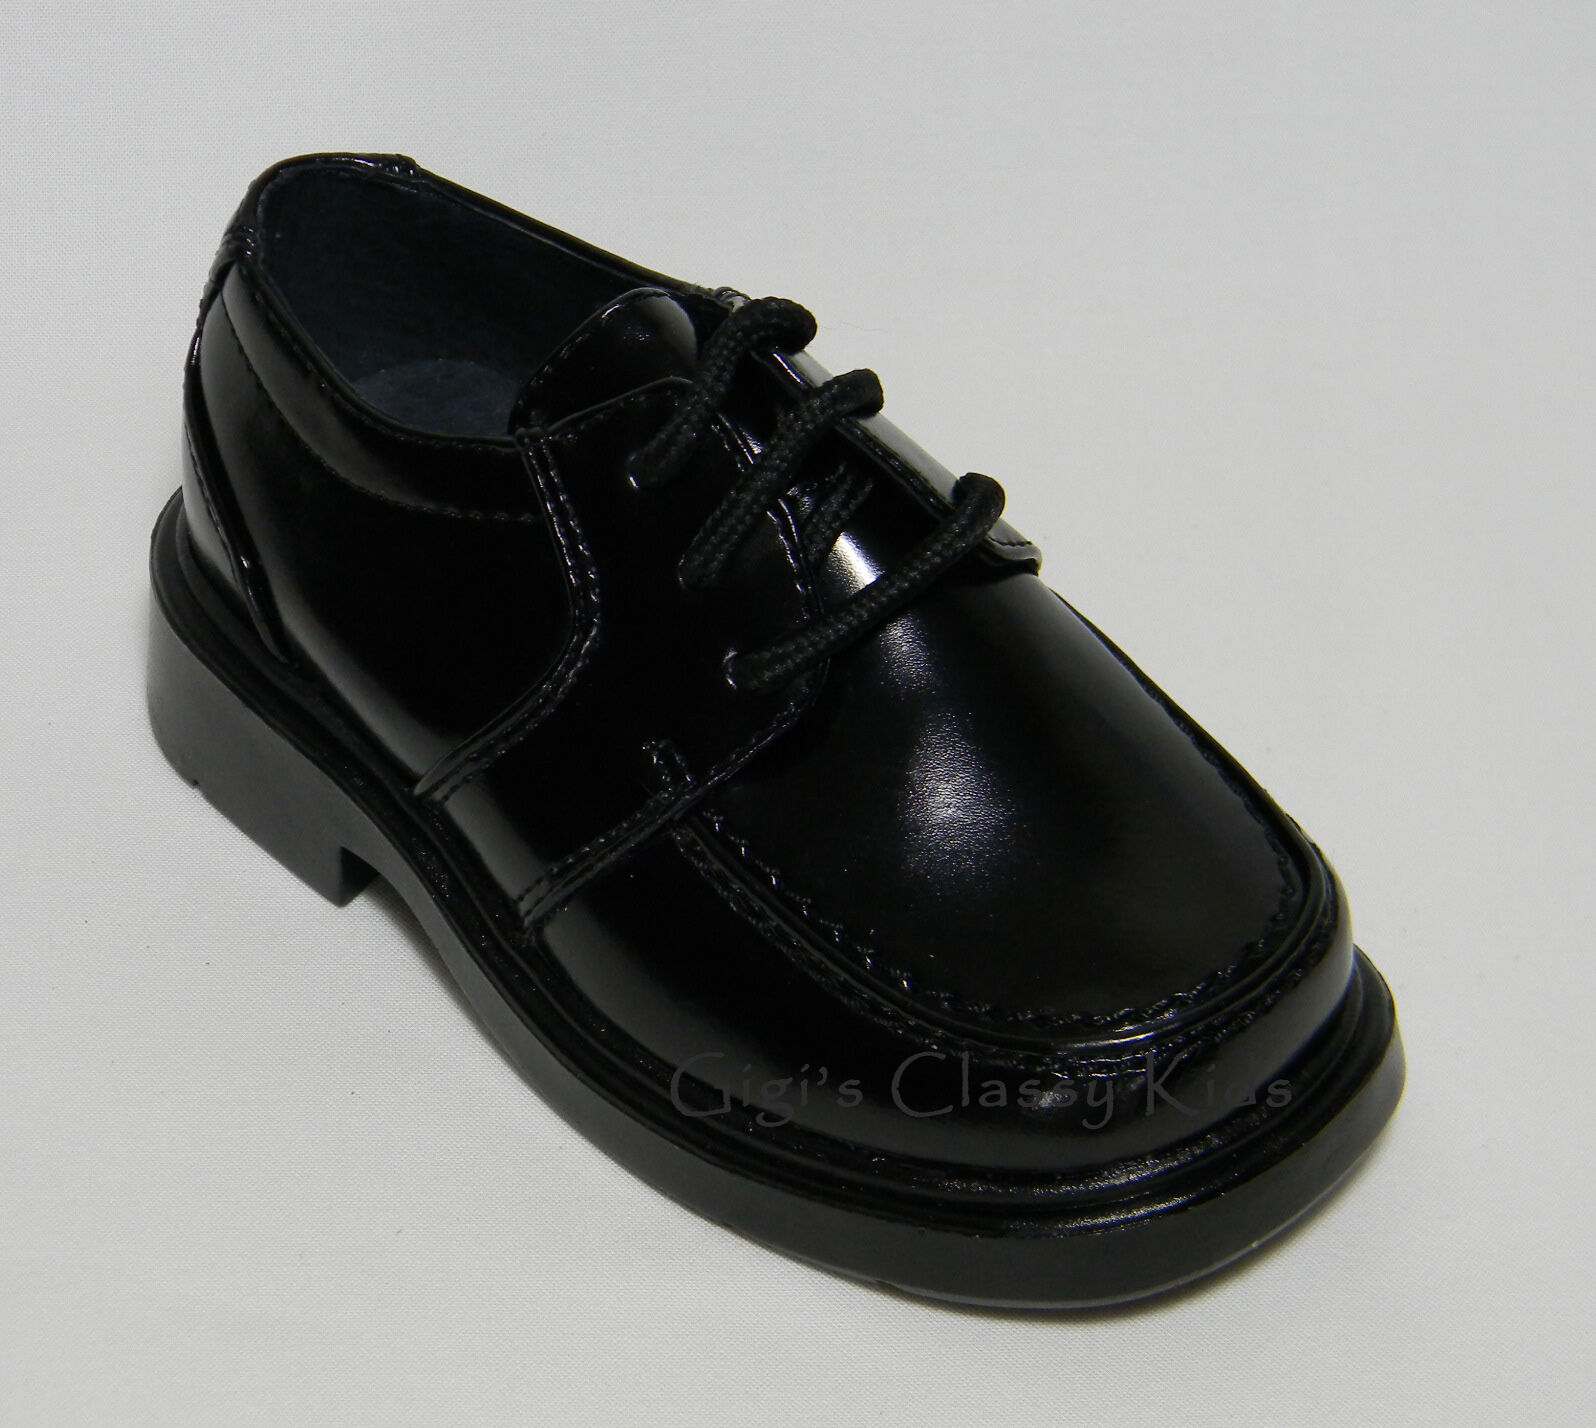 Baby boy dress shoes – Shoes online